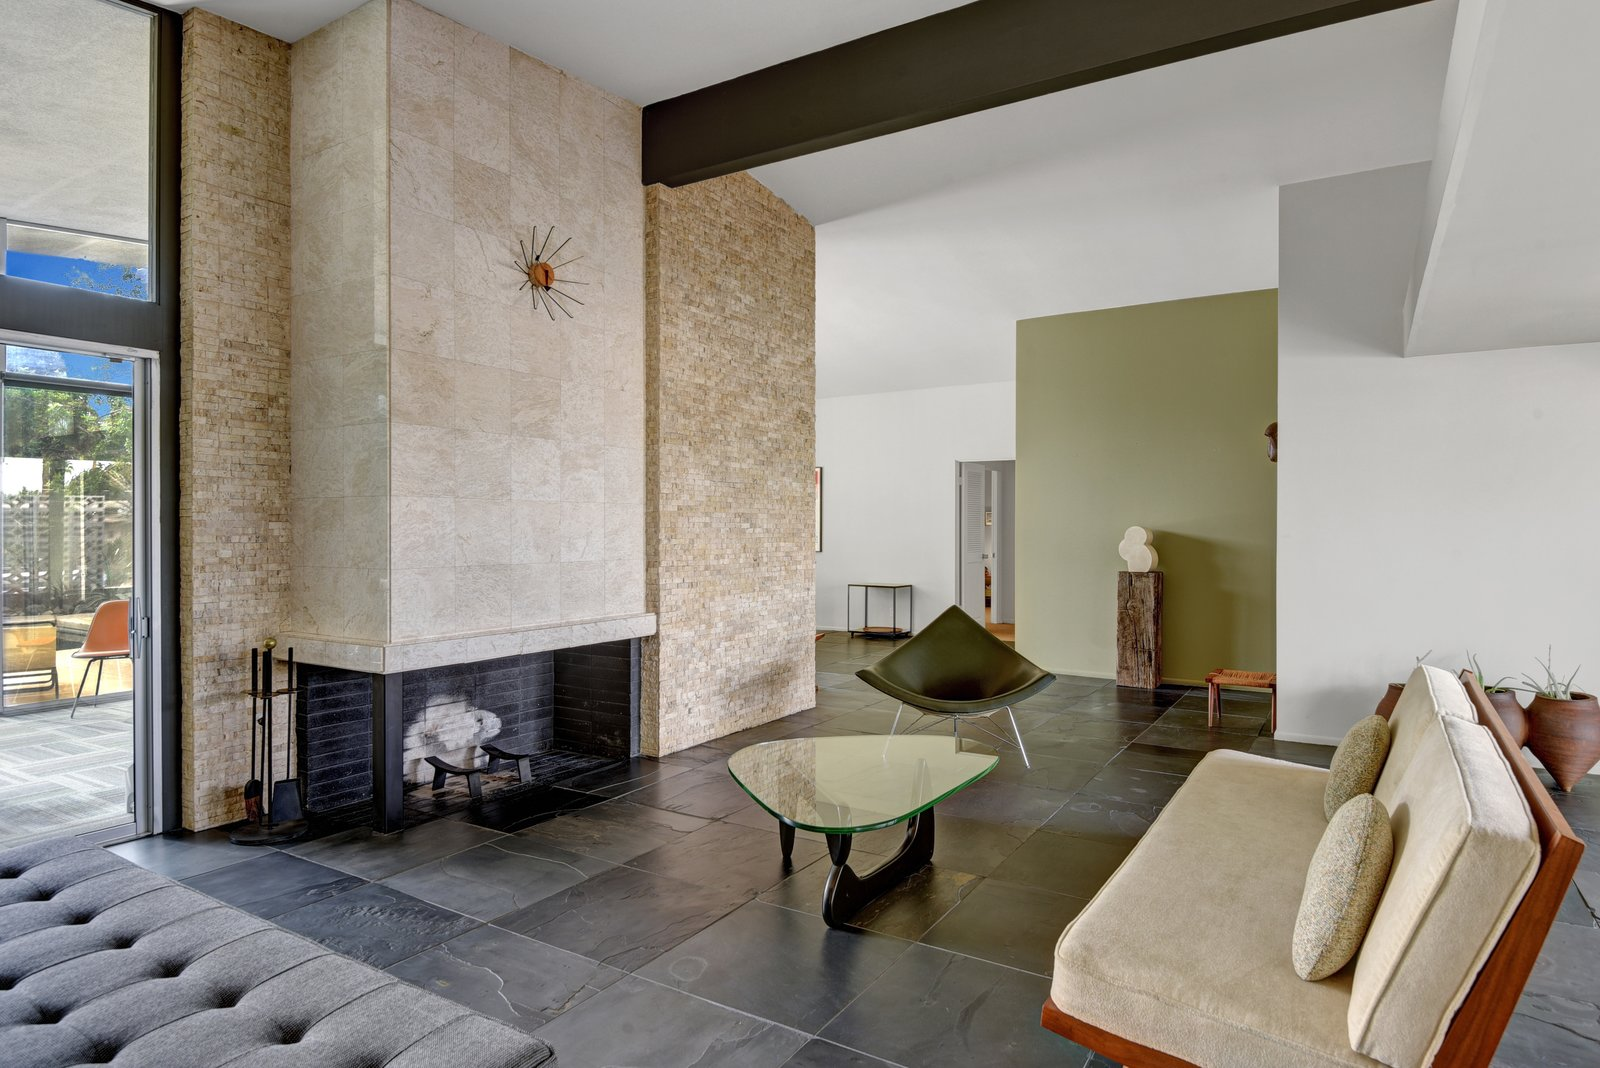 The split rock fireplace is just one of the pristine original midcentury details this home has to offer.